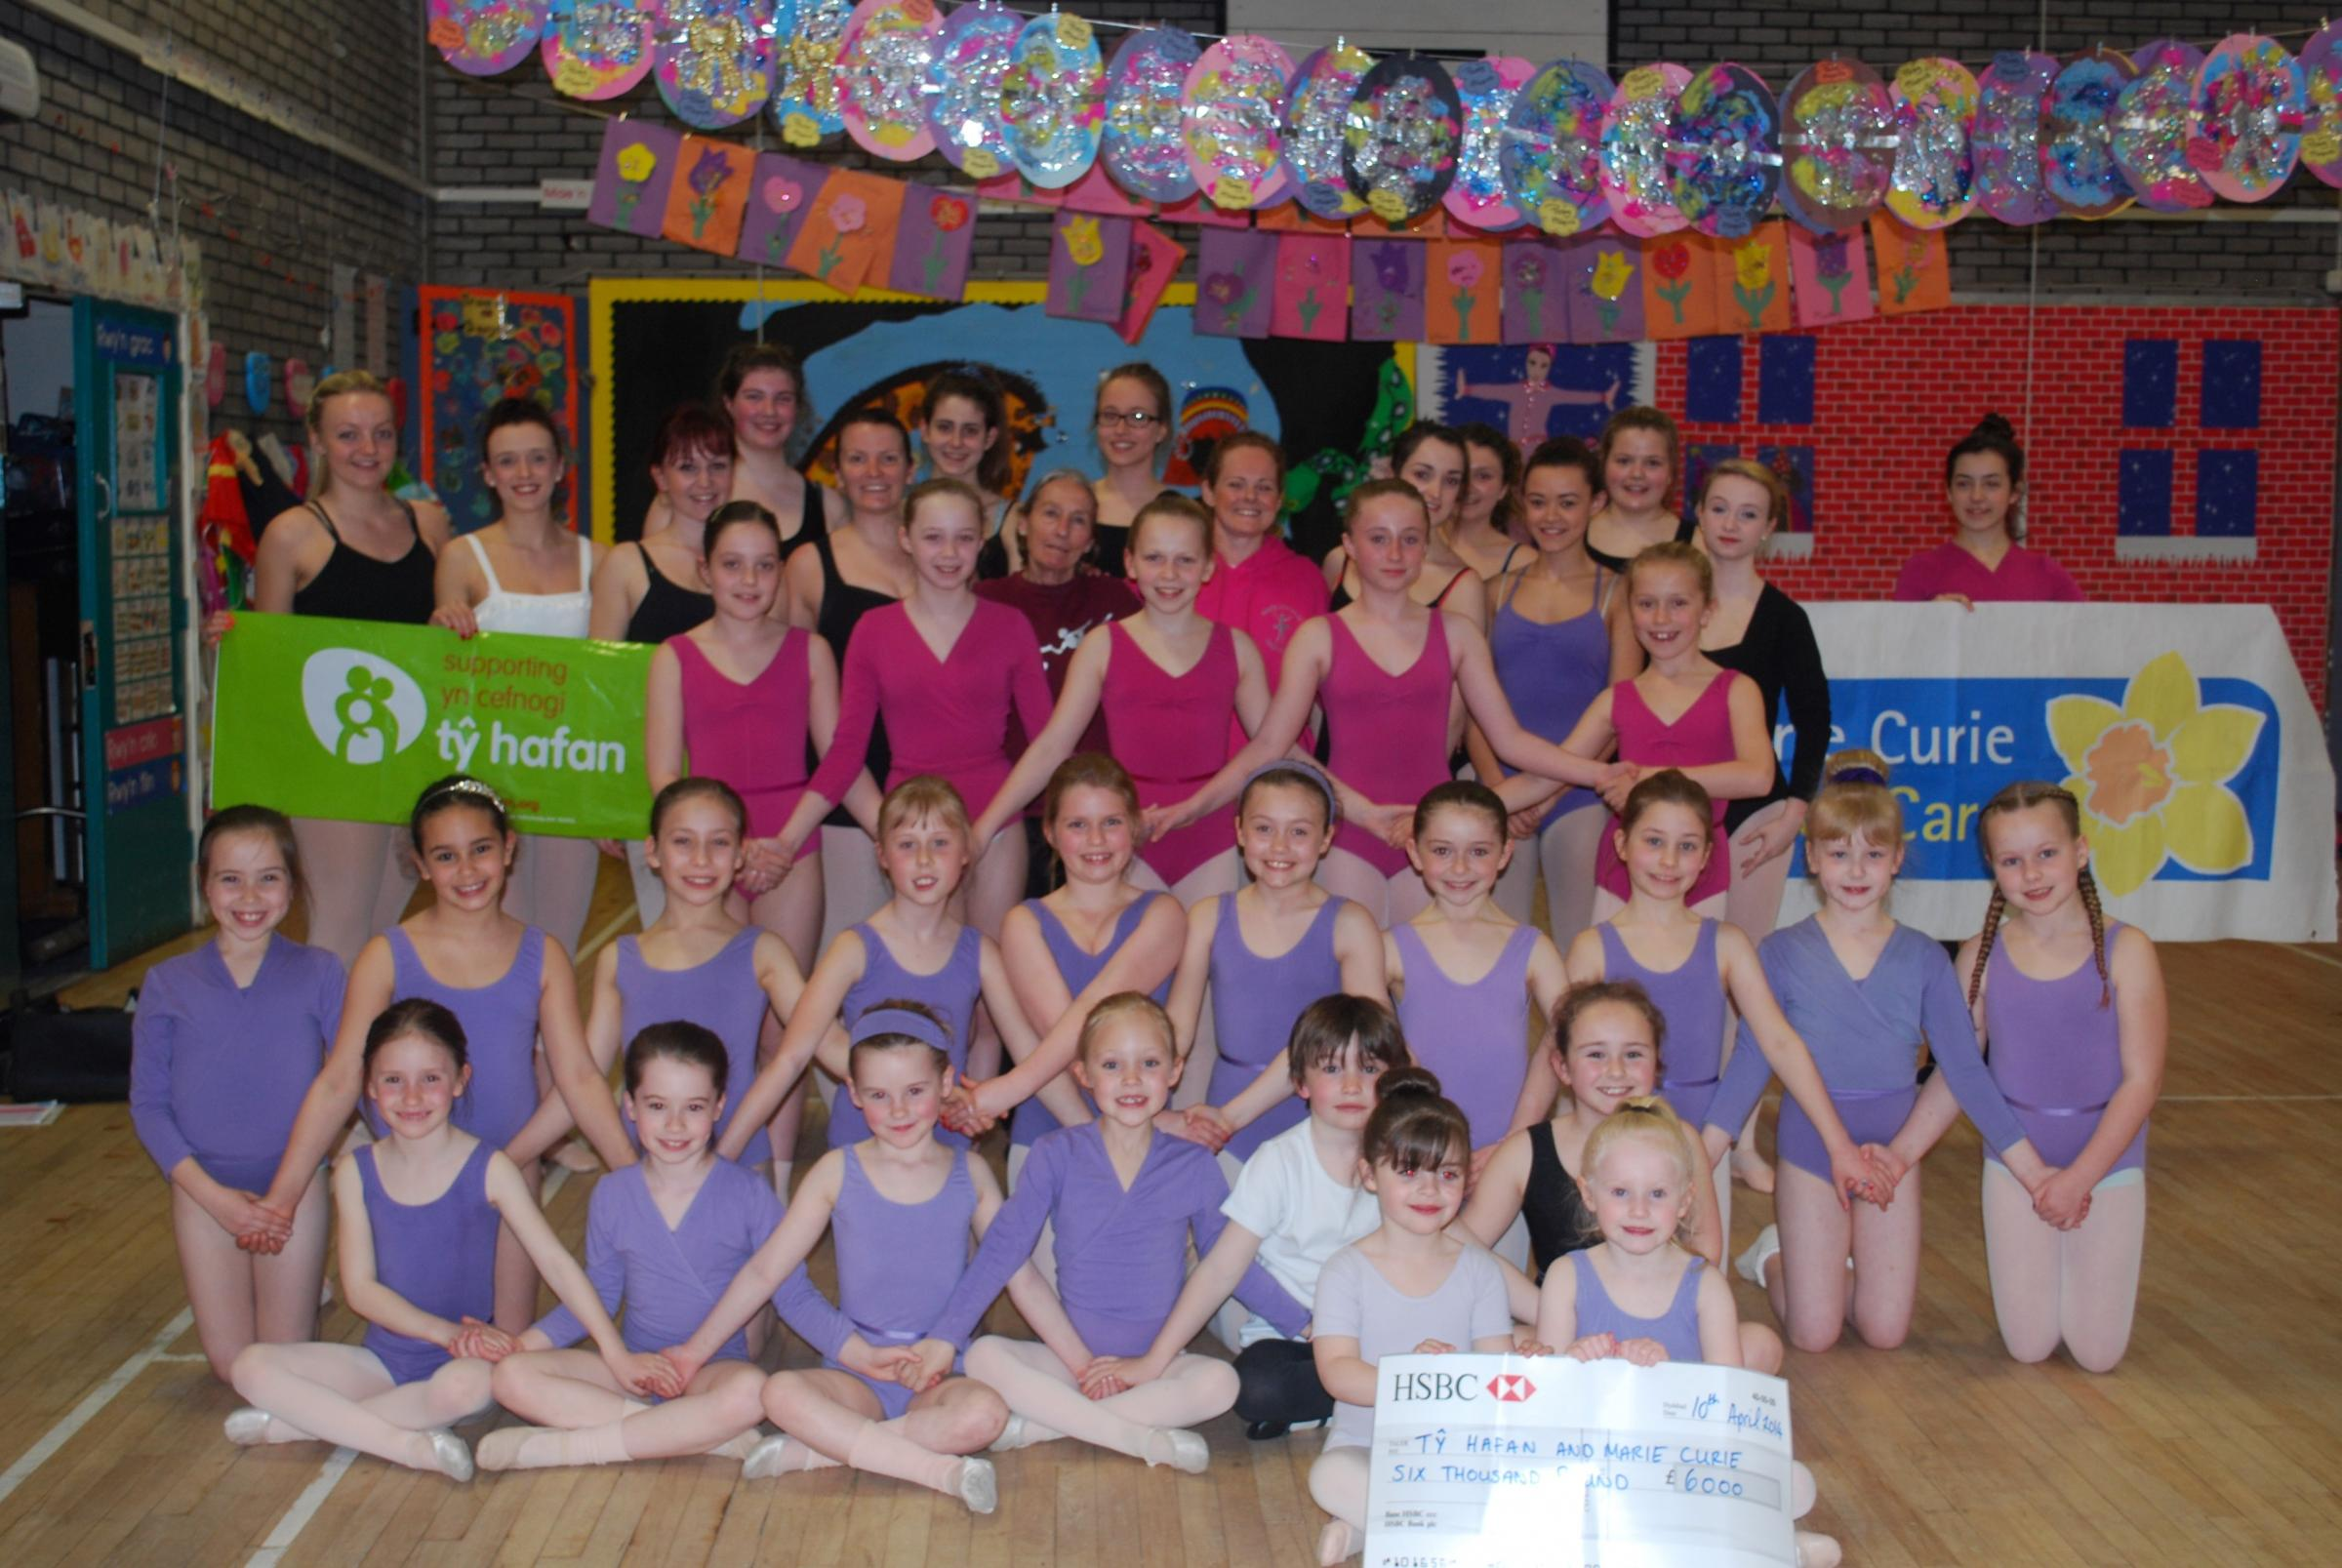 The Wendy Summerell School Of Dance presented a wonderful show